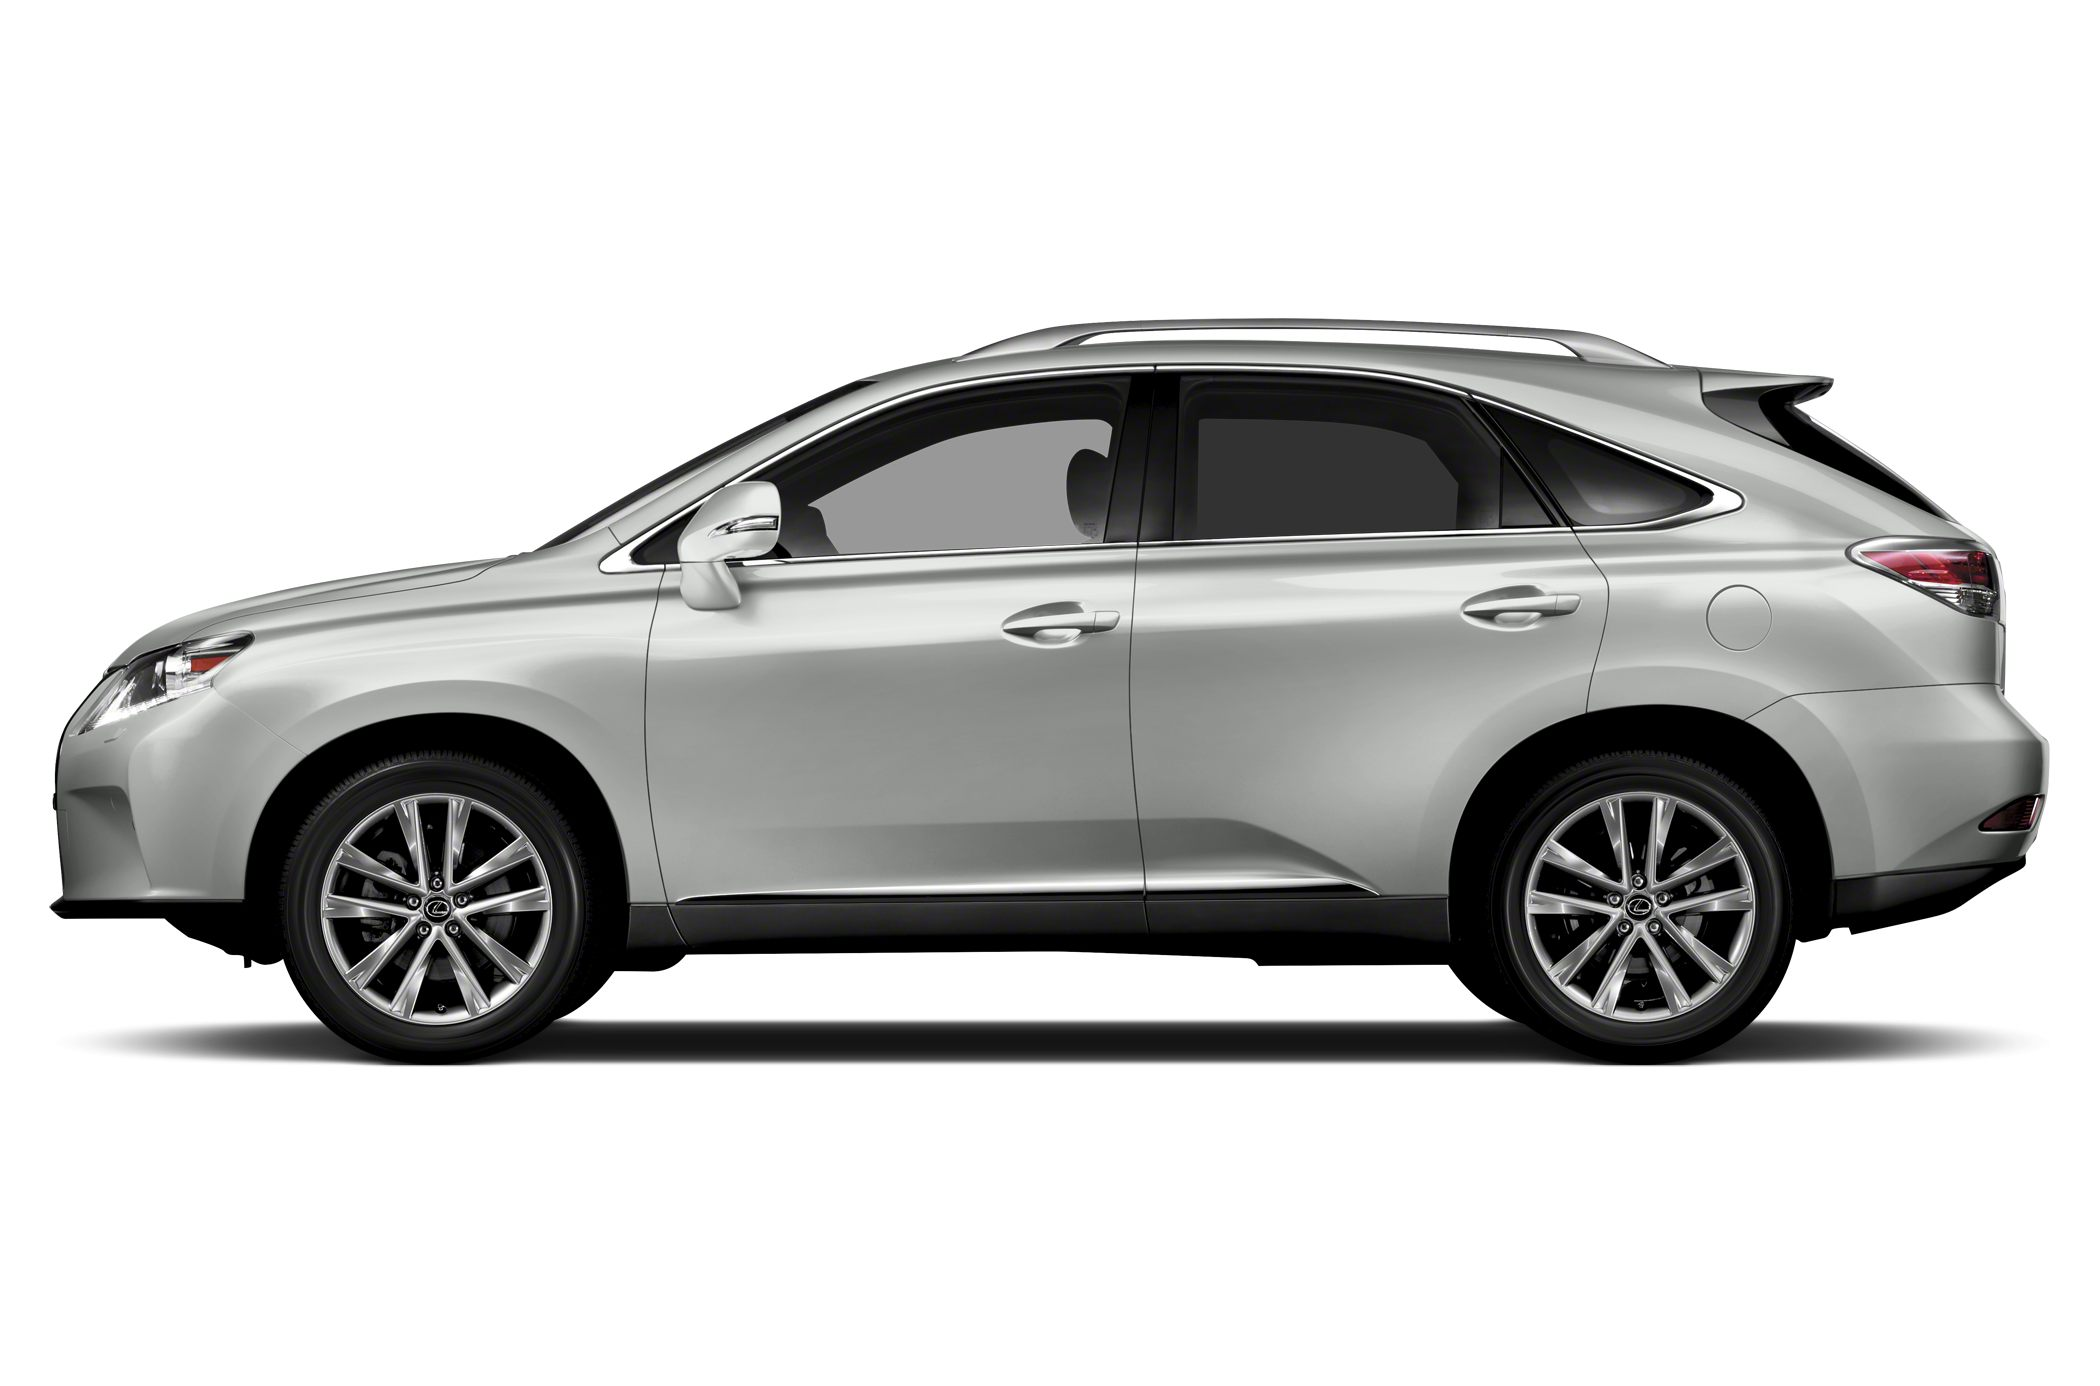 Comparison Lexus Rx 450h Base 2015 Vs Toyota Harrier